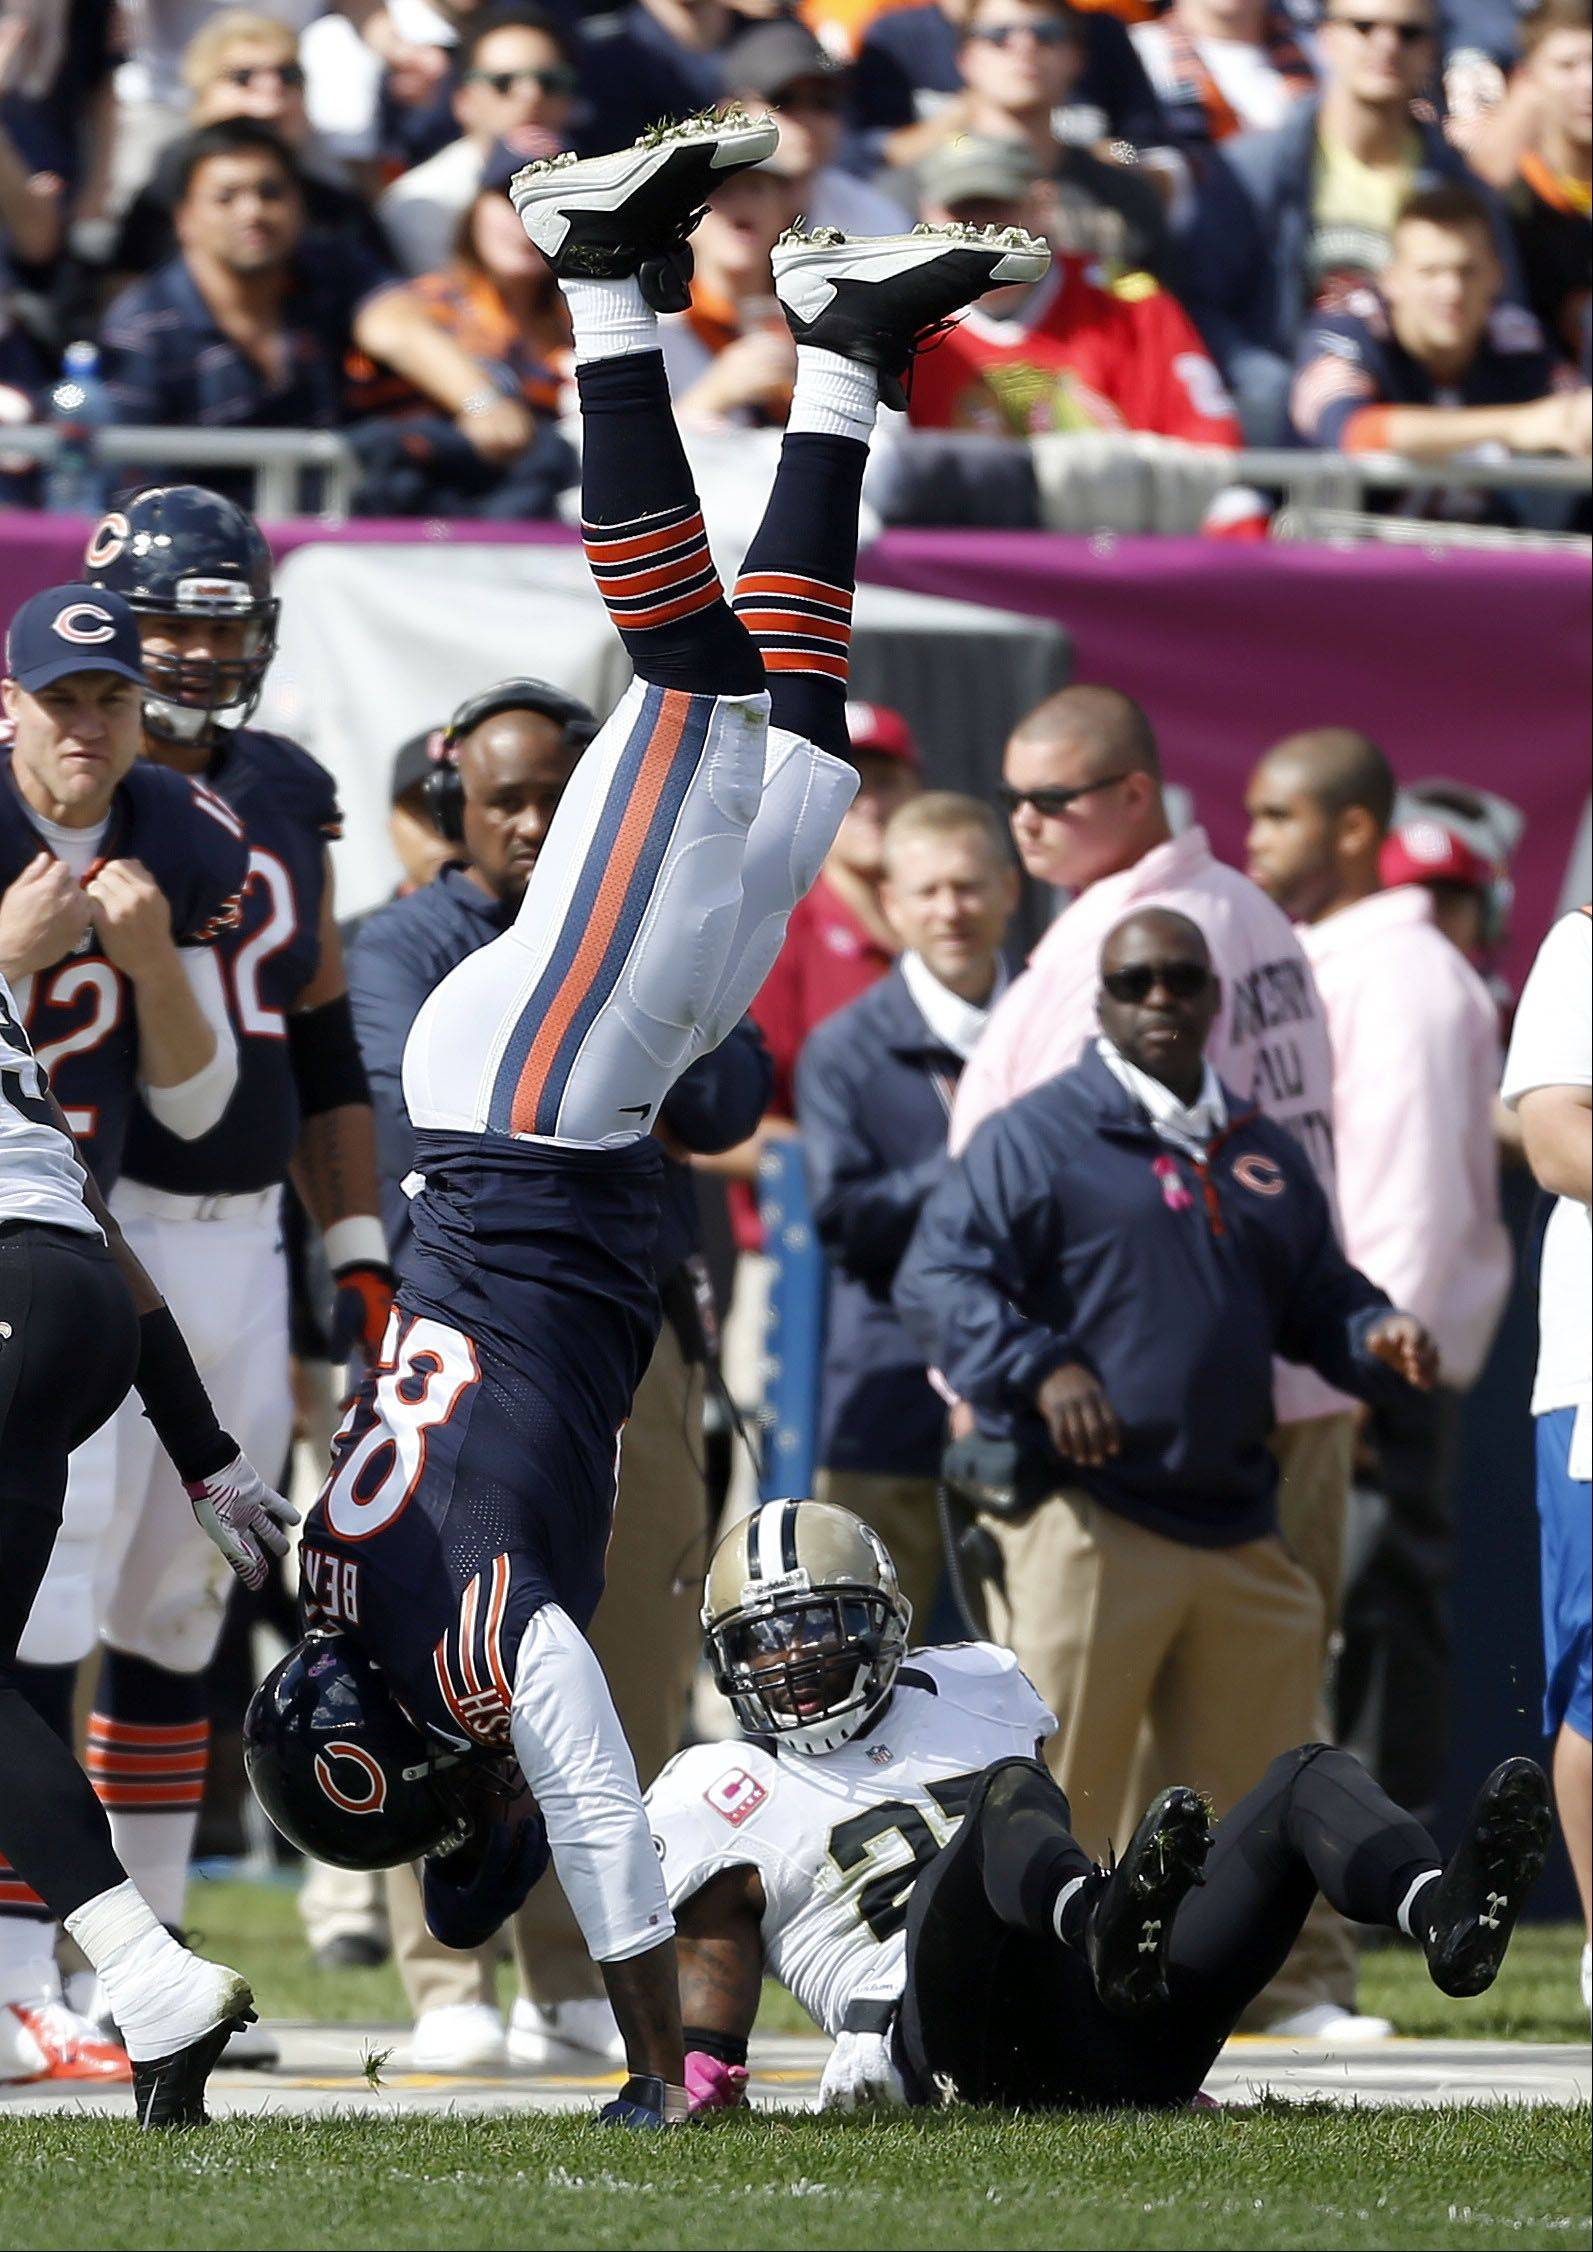 Chicago Bears tight end Martellus Bennett is flipped upside down by New Orleans Saints free safety Malcolm Jenkins.